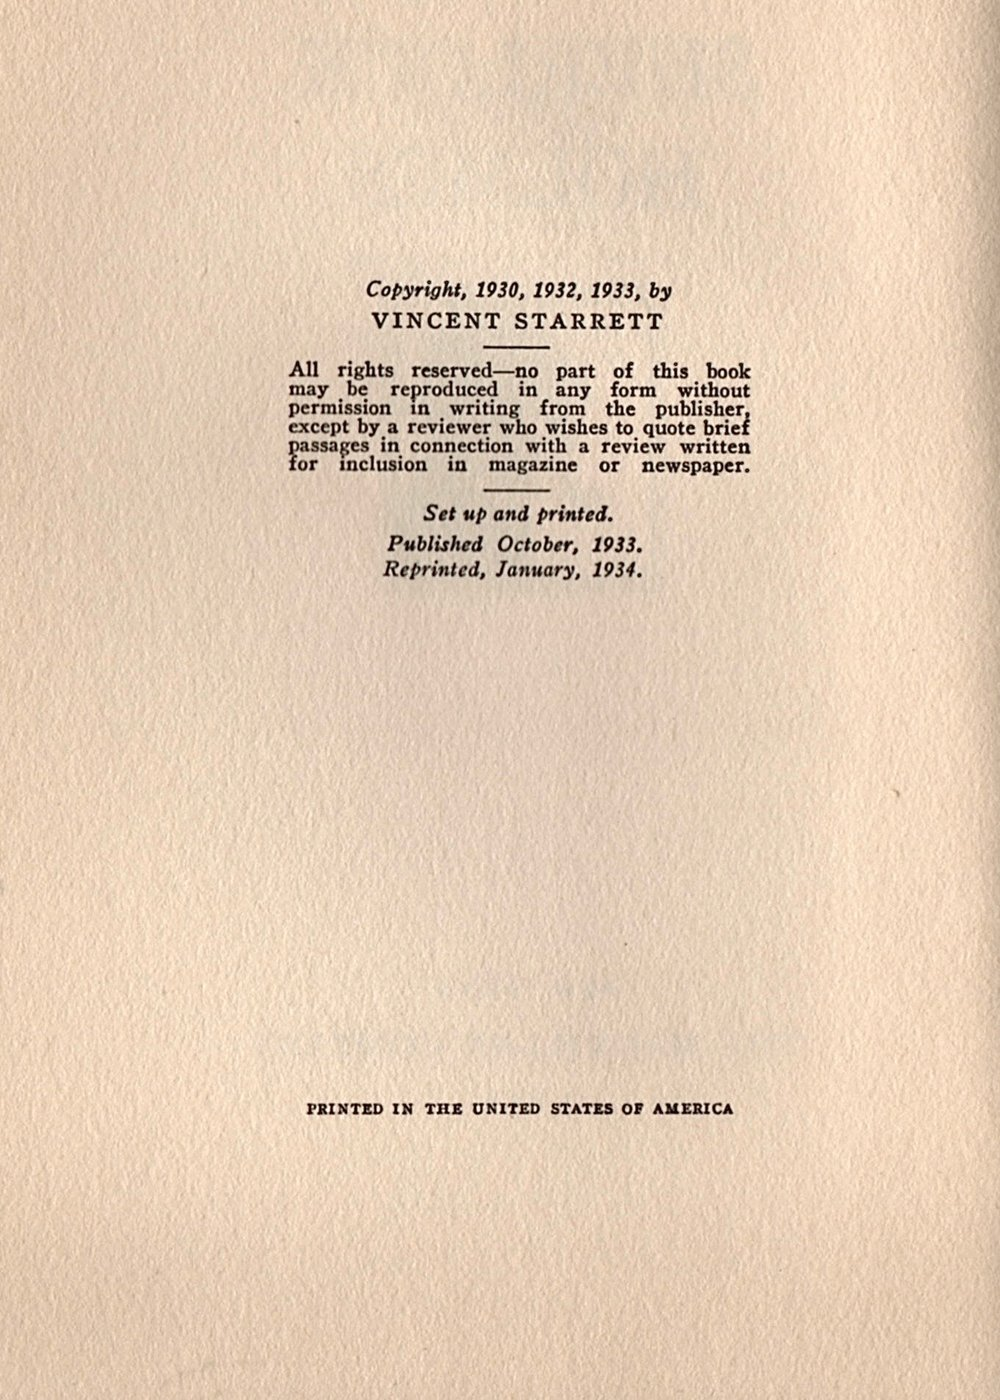 TPLOSH 1934 Second Edition.jpg